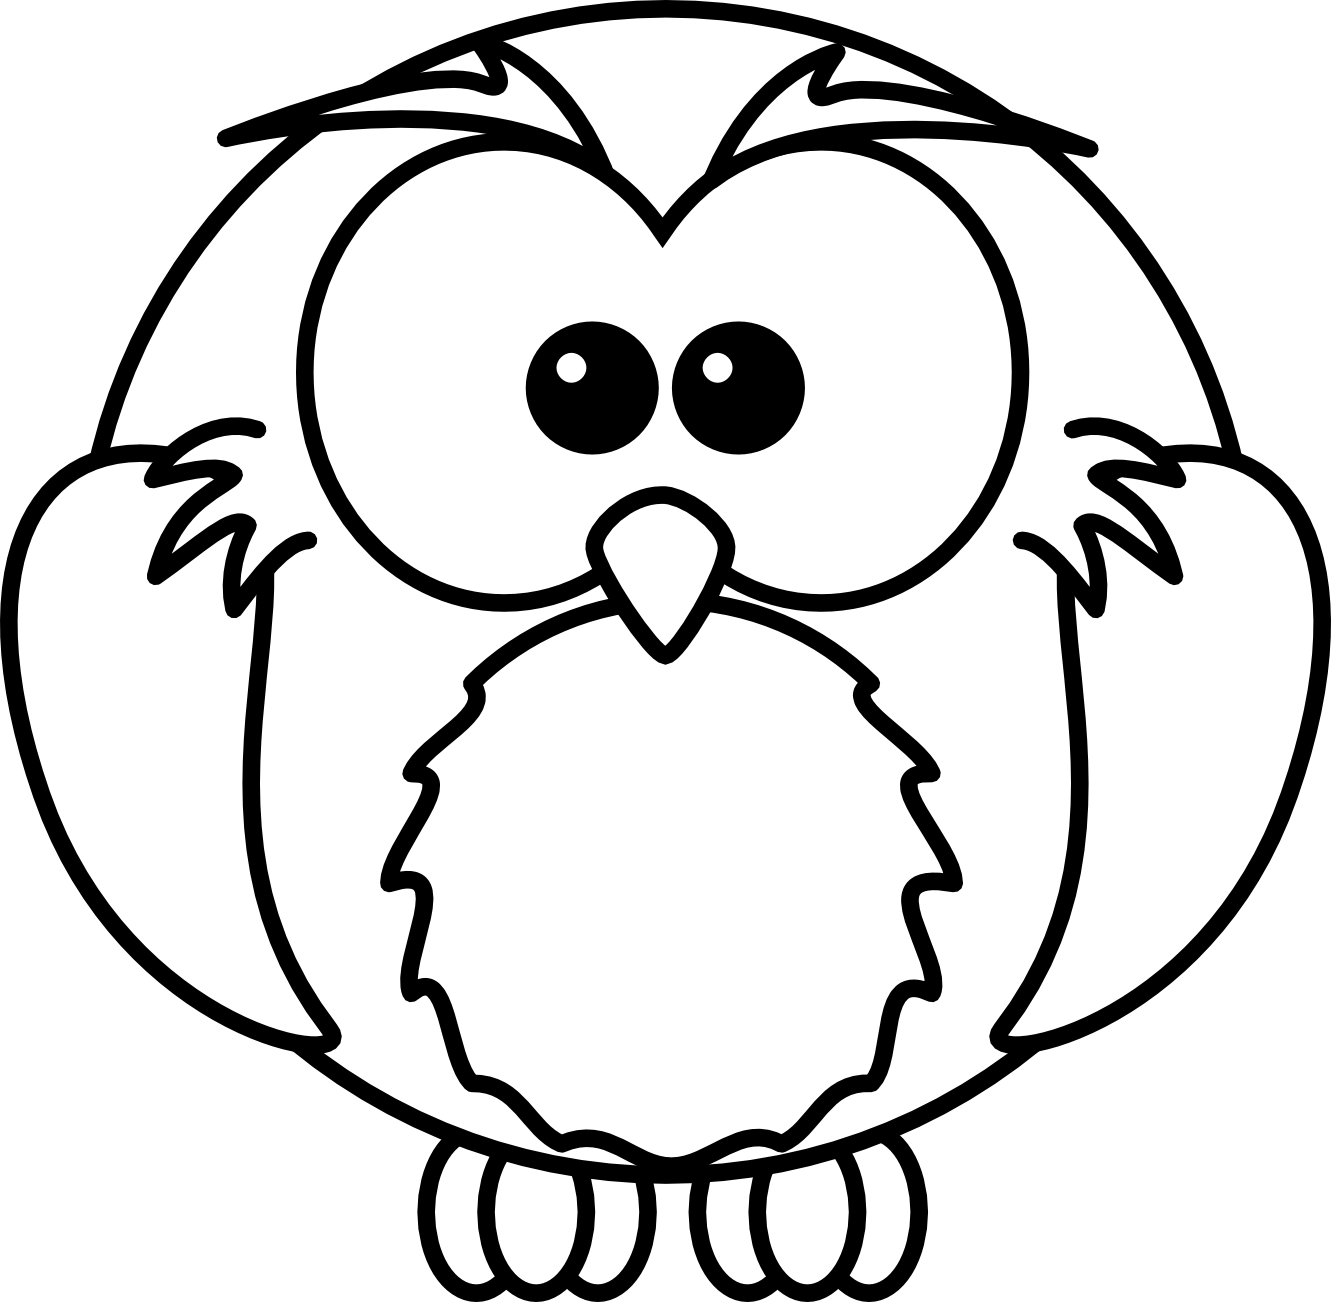 Cute Animal Clipart Black And White Car Tuning - Cliparts.co